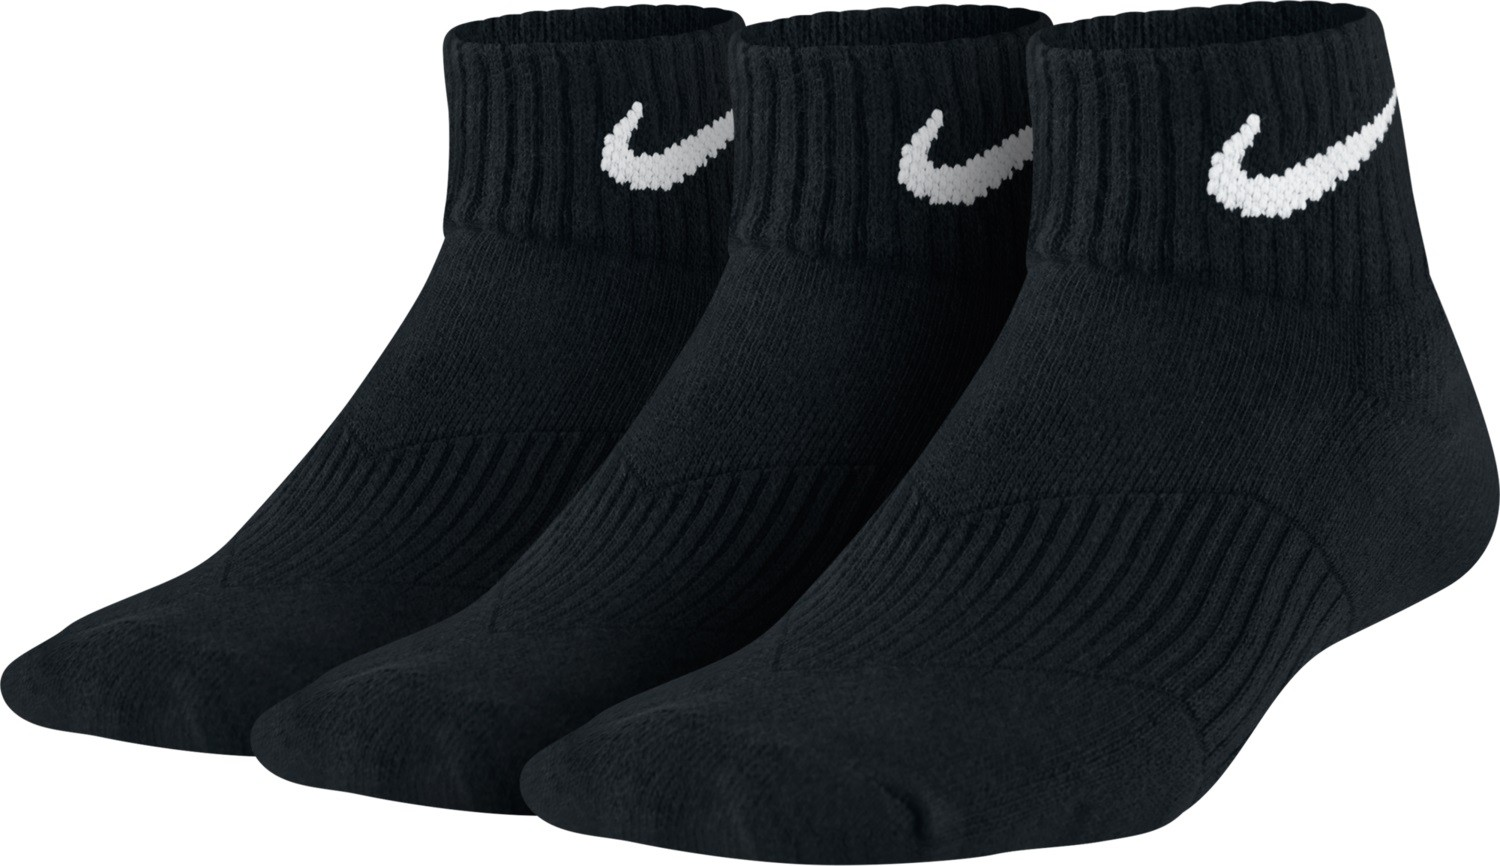 nike kinder performance cotton socken. Black Bedroom Furniture Sets. Home Design Ideas